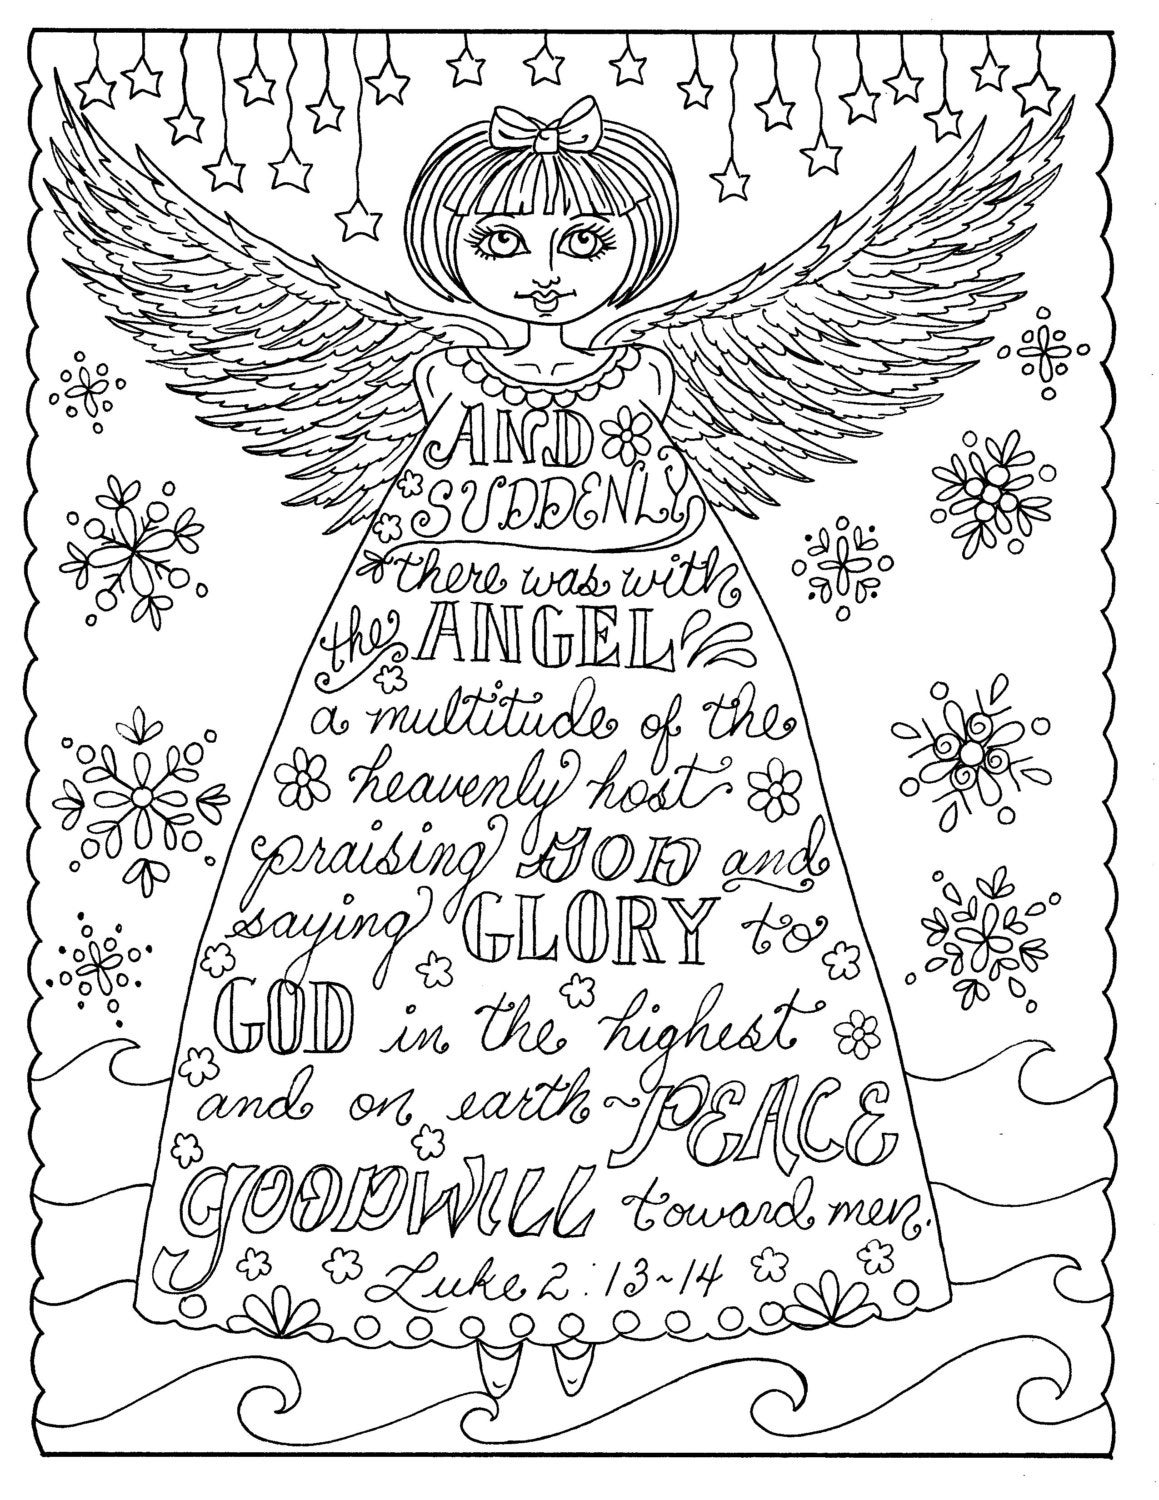 free bible christmas coloring pages | Christmas Angel Christian Coloring page Adult coloring ...